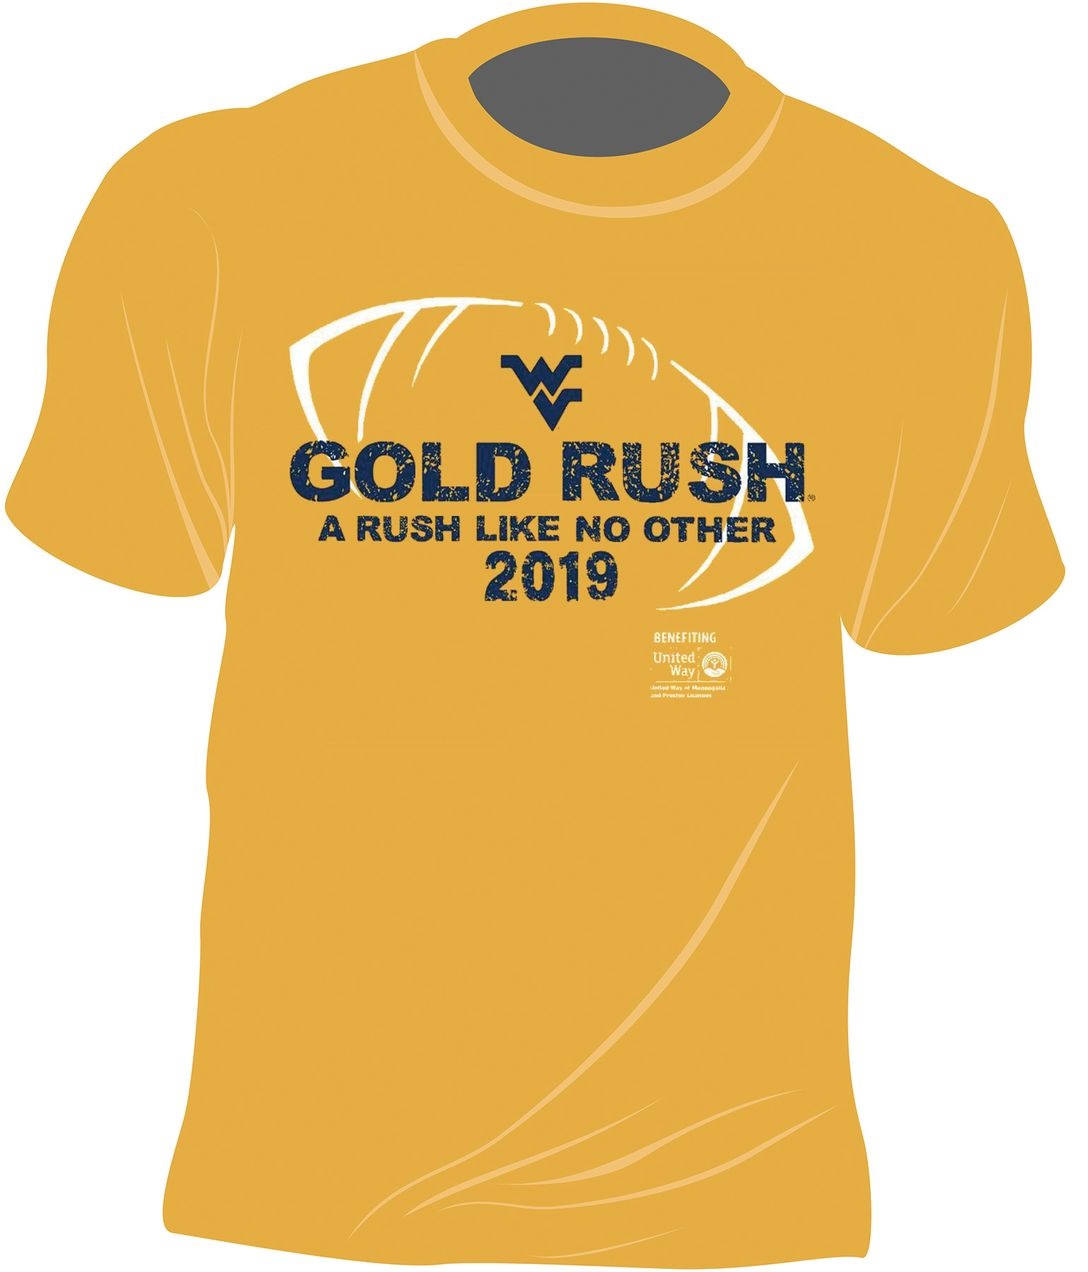 Gold Rush shirt image